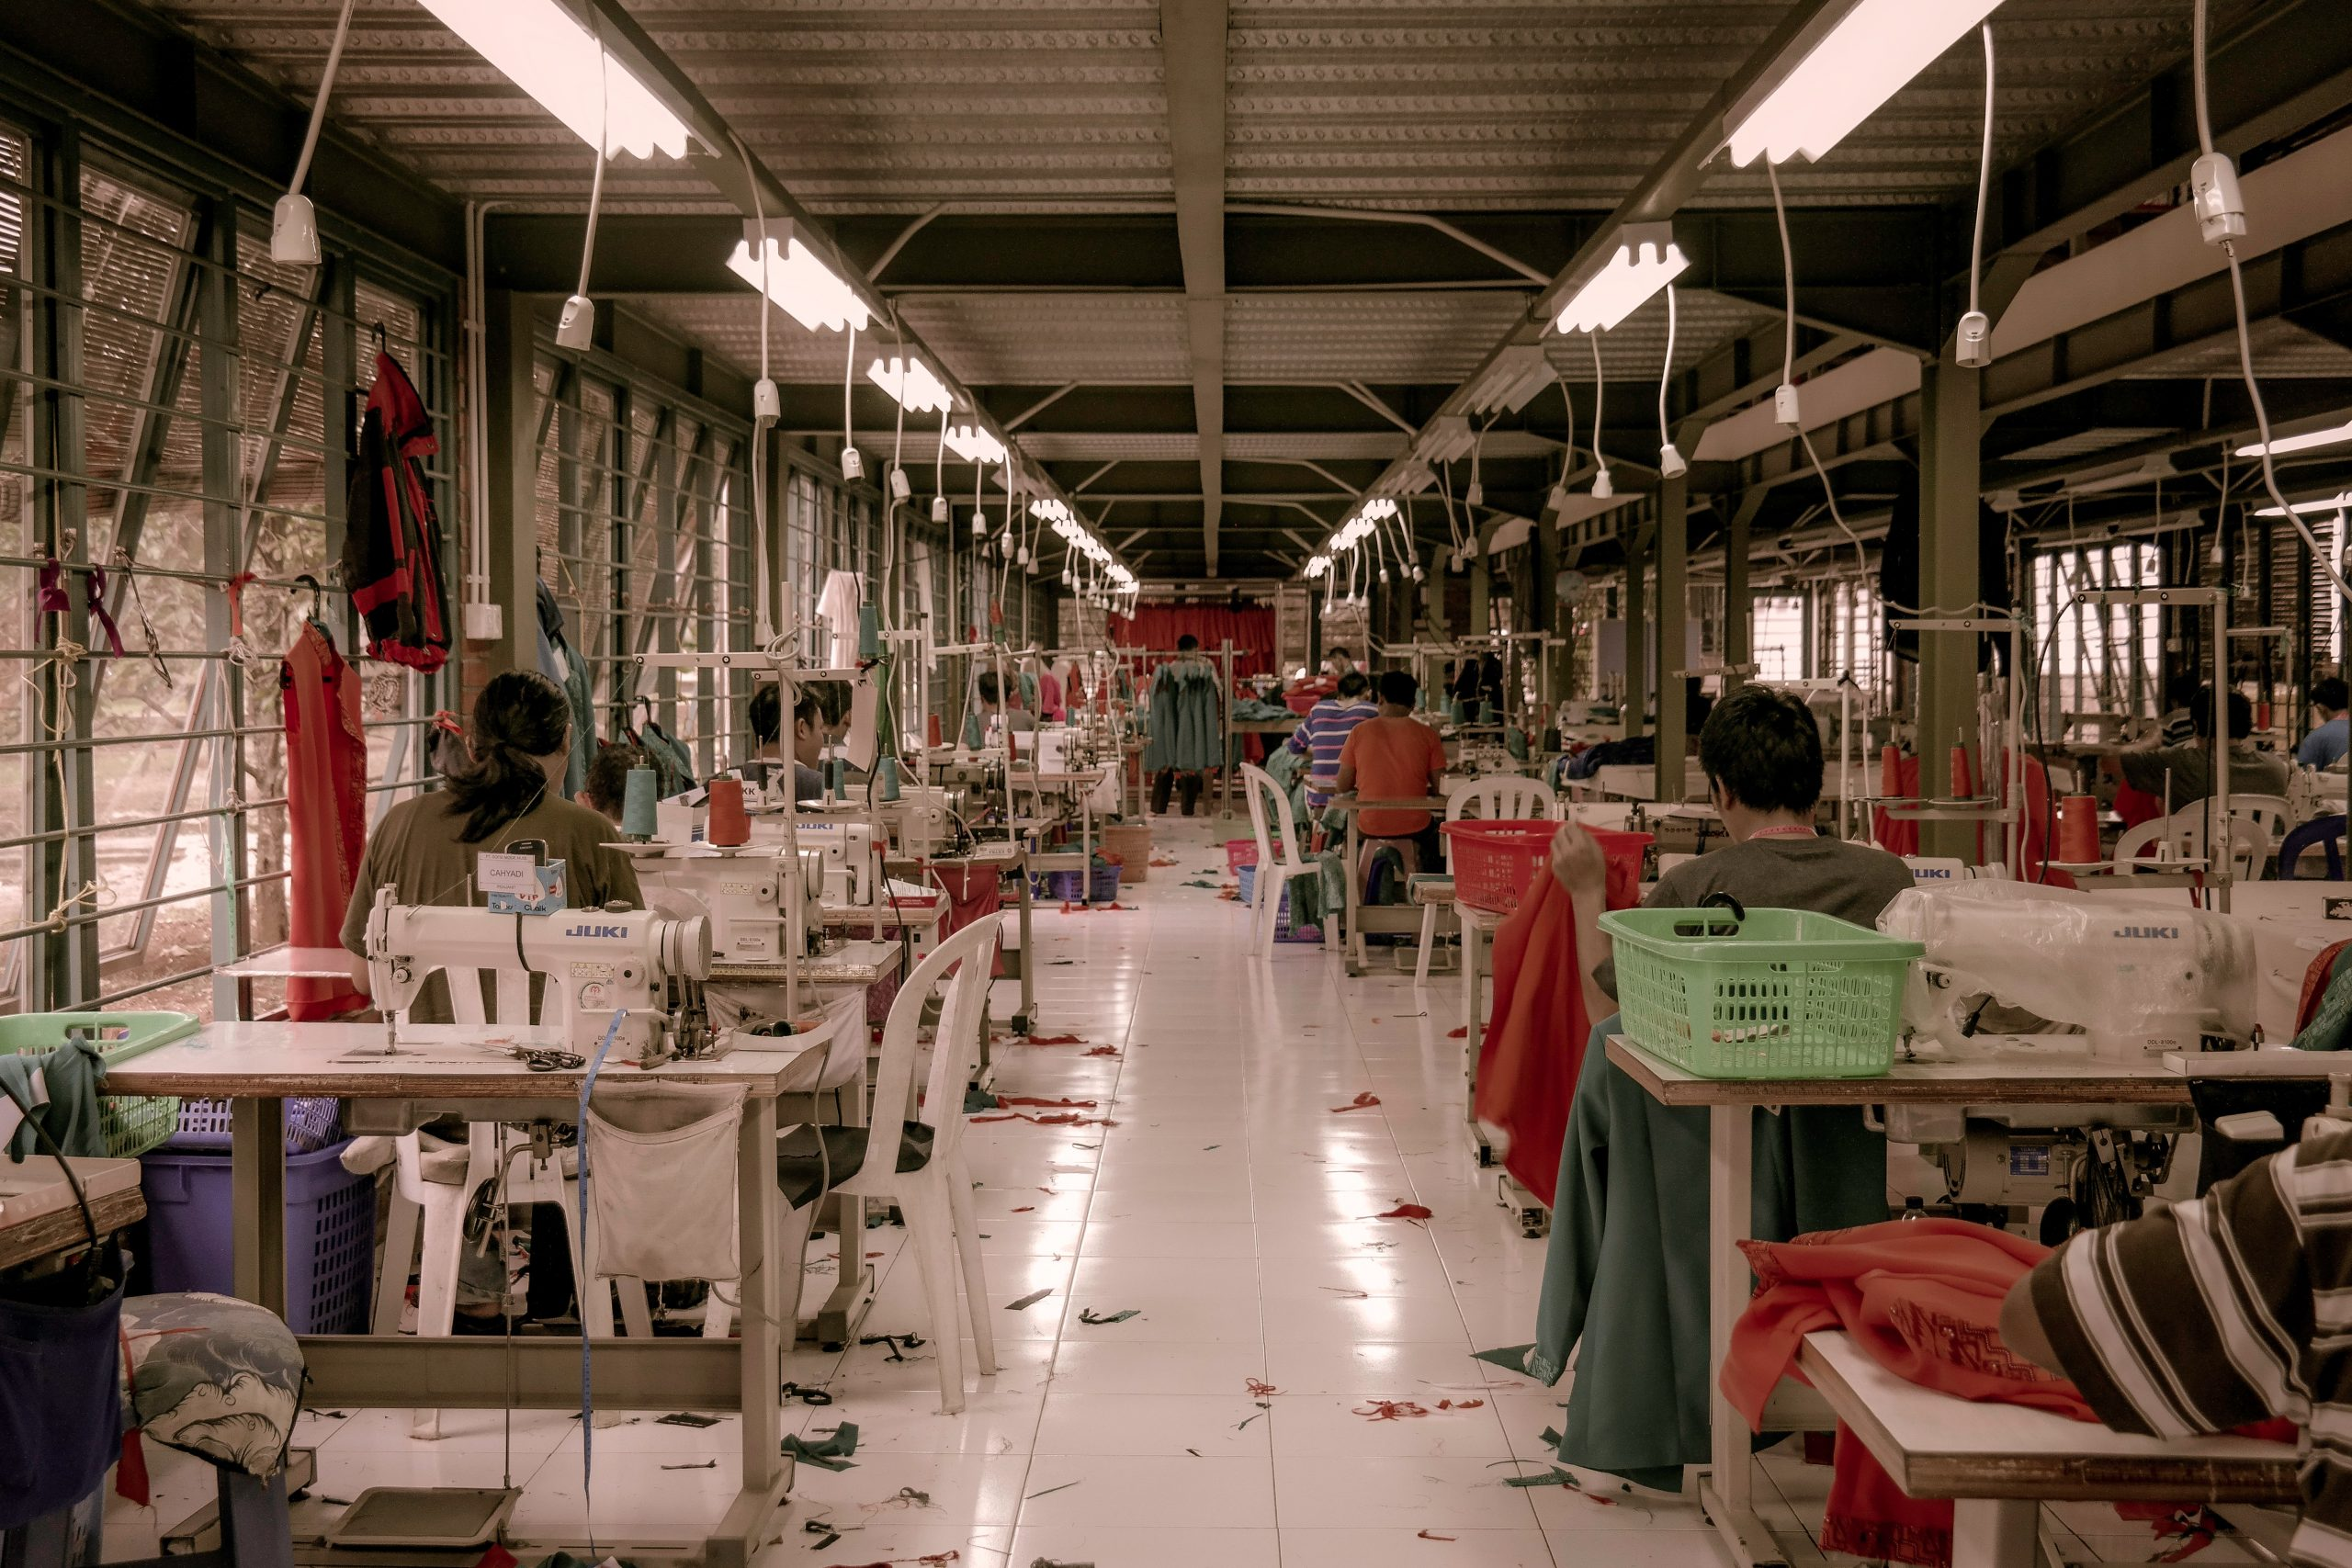 Workers are seen in a garment factory